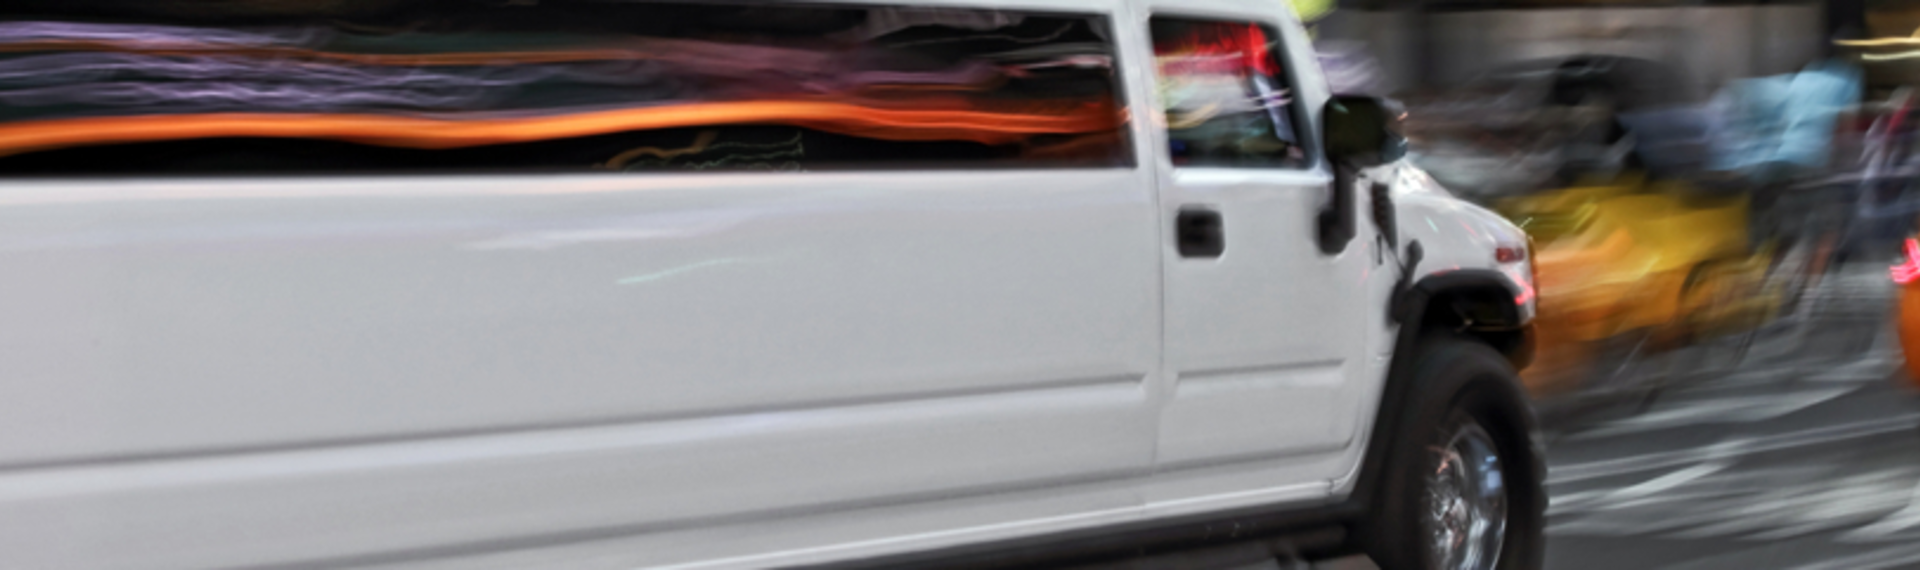 Cologne Hummer Limo Transfer Dusseldorf Airport image